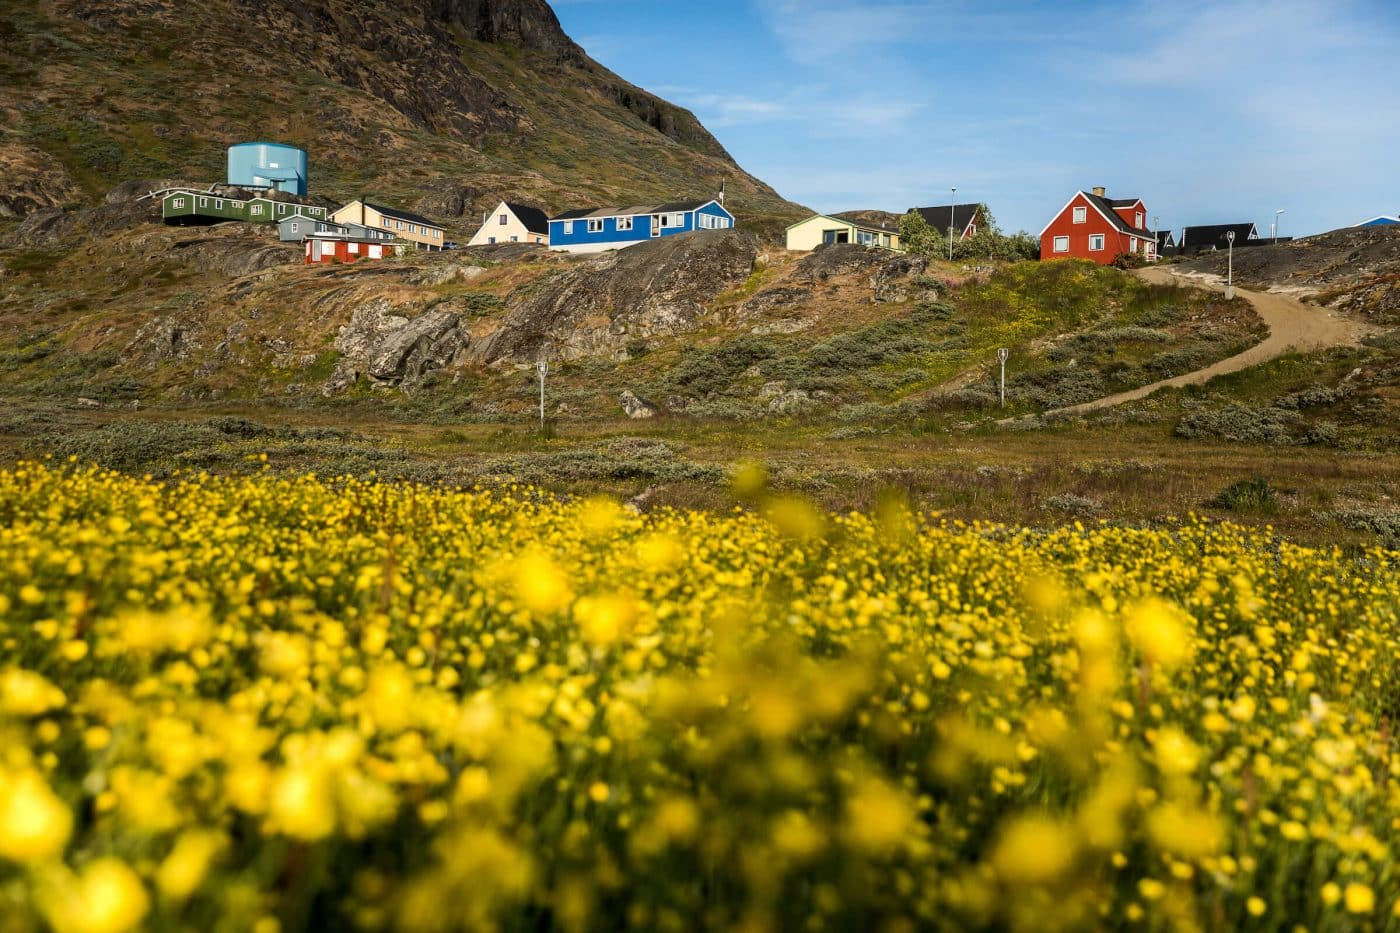 A field of flowers in Narsaq in South Greenland, by Mads Pihl